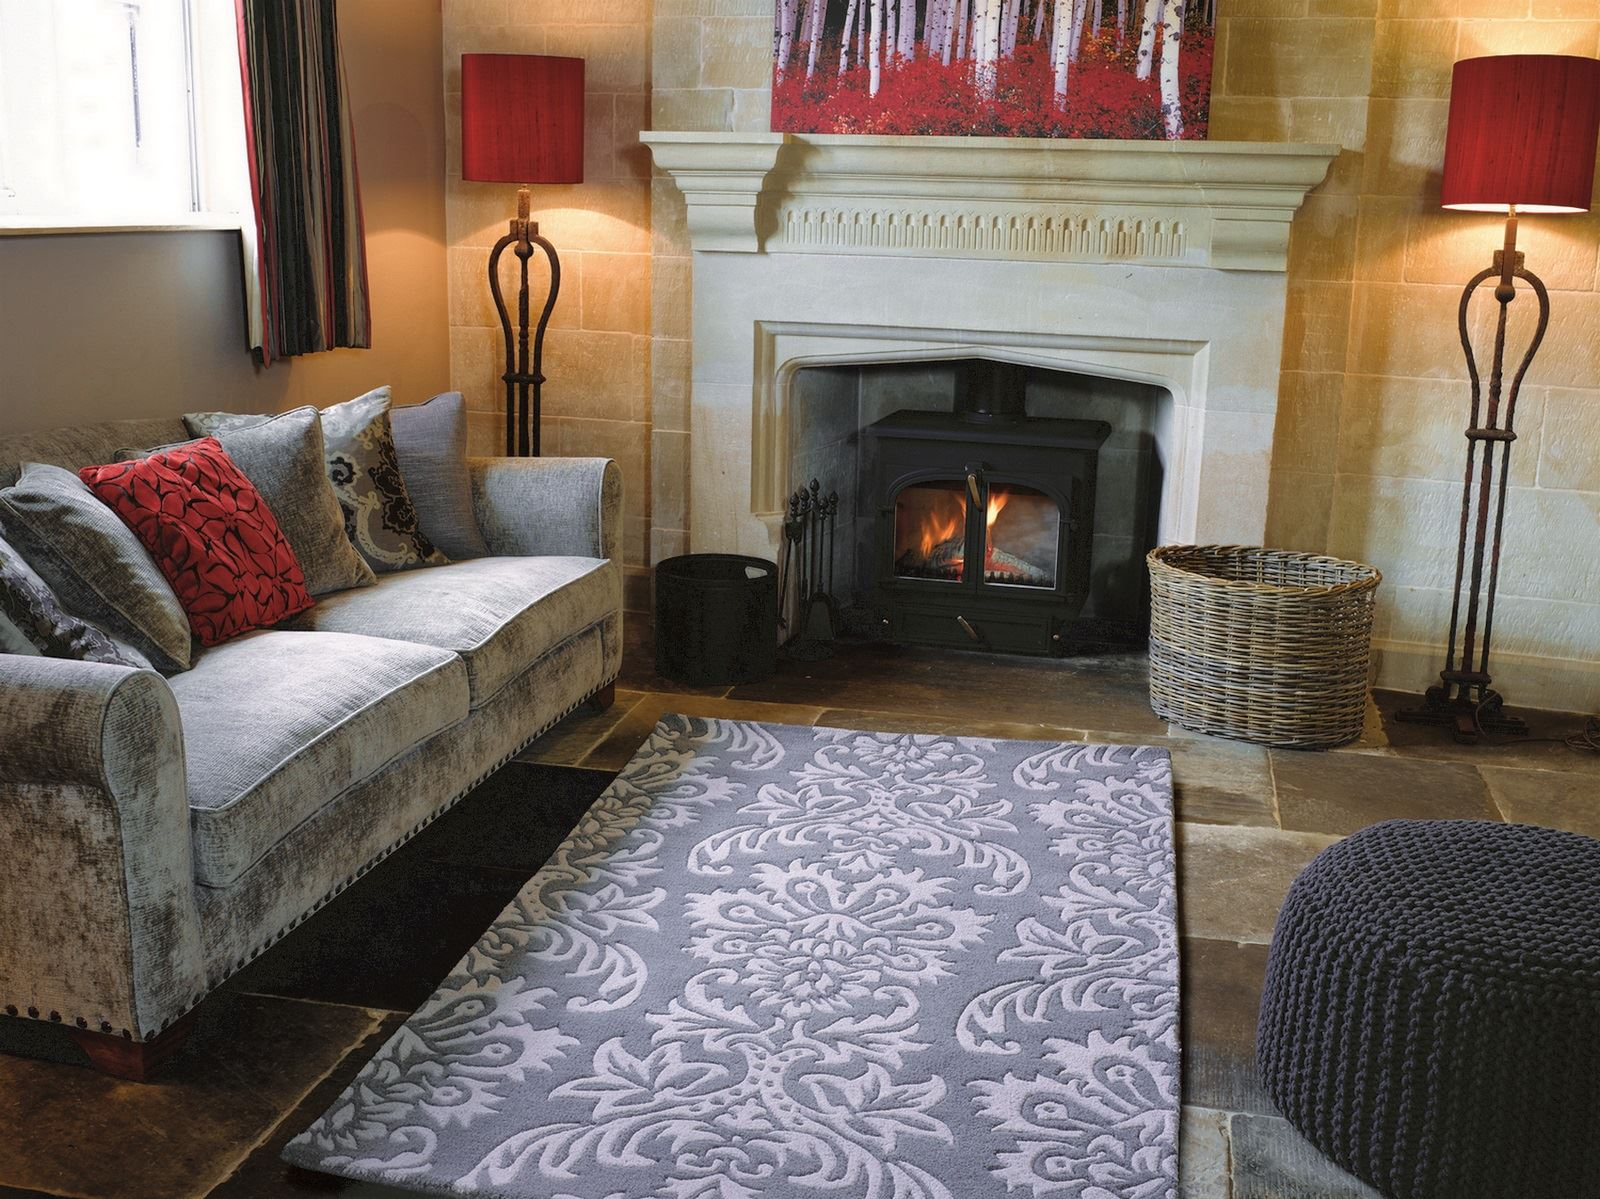 small hearth rugs textiles and rugs ideas - Fireplace Rugs